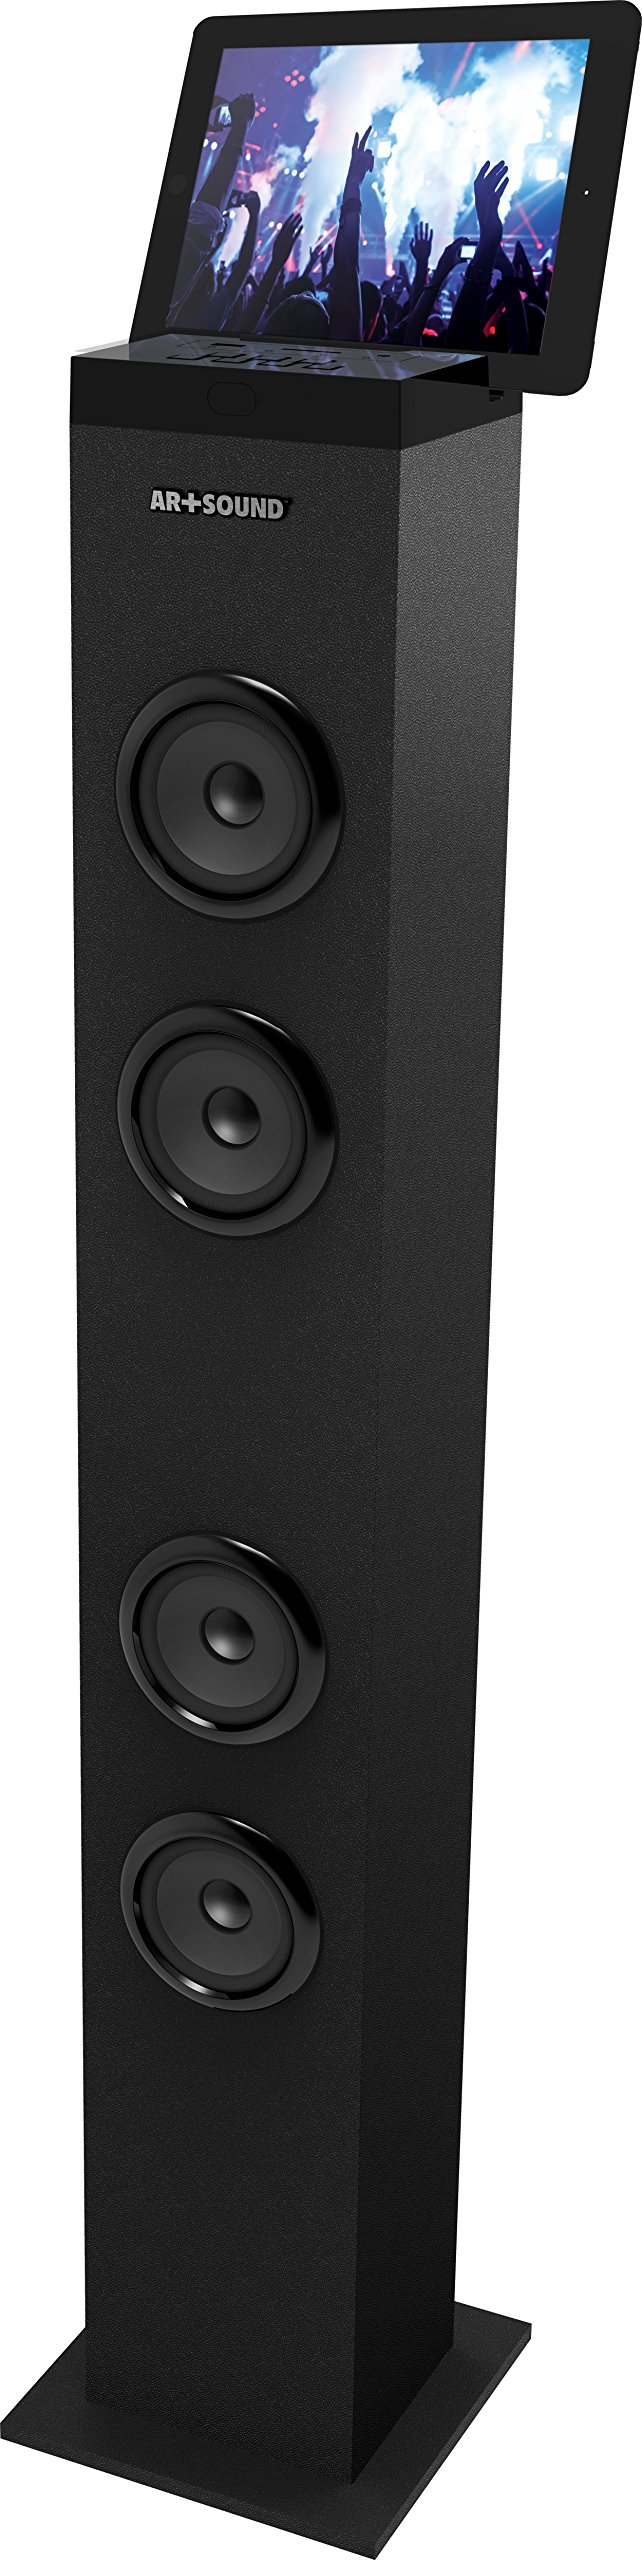 AR+SOUND AR1001-SK Bluetooth Tall Tower Stereo Speaker System with Built-In Radio, Docking Station and Remote Control (Black)